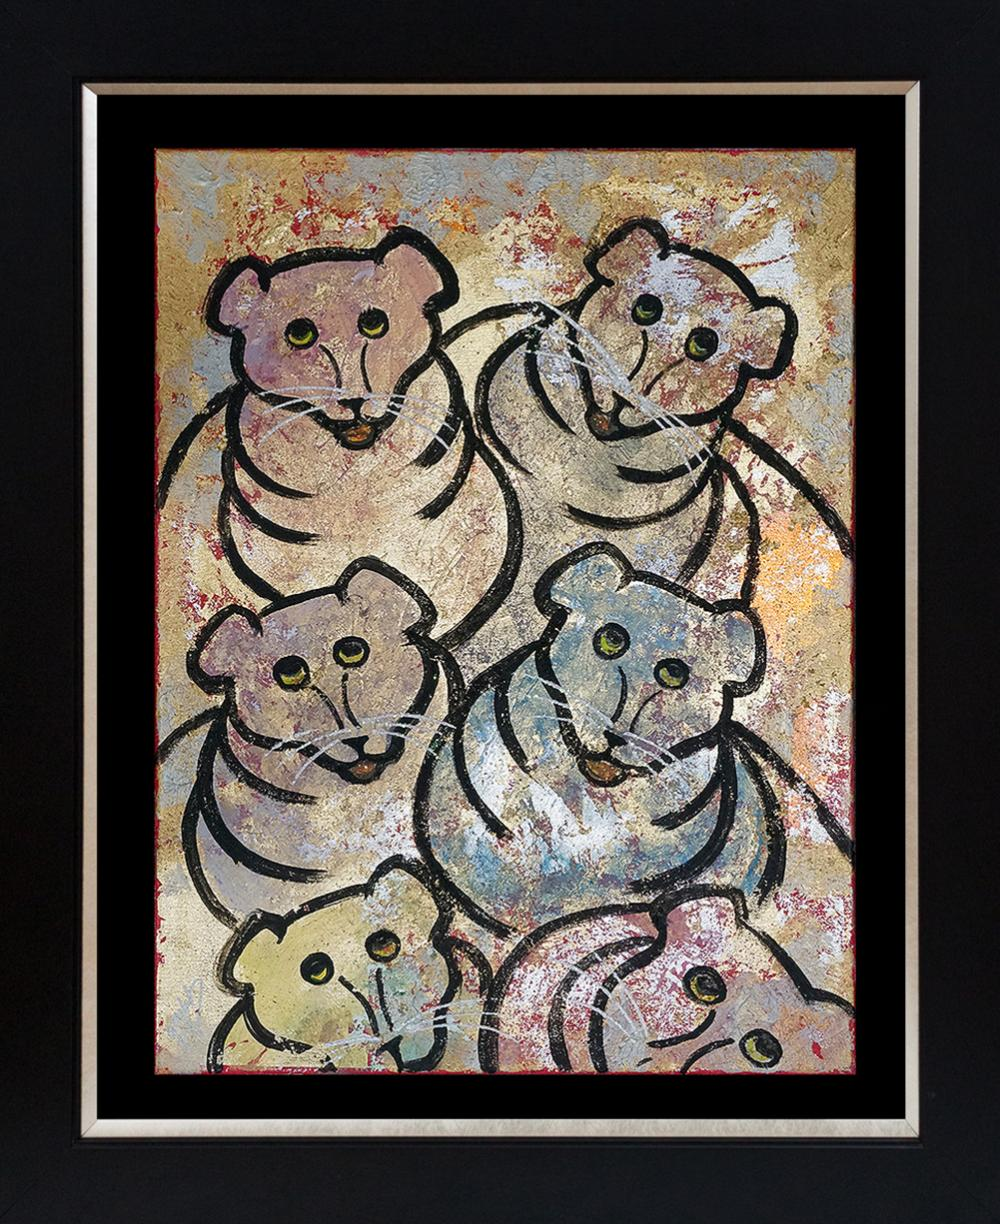 Lot 2994: Original Bears on canvas by Gaylord Soli